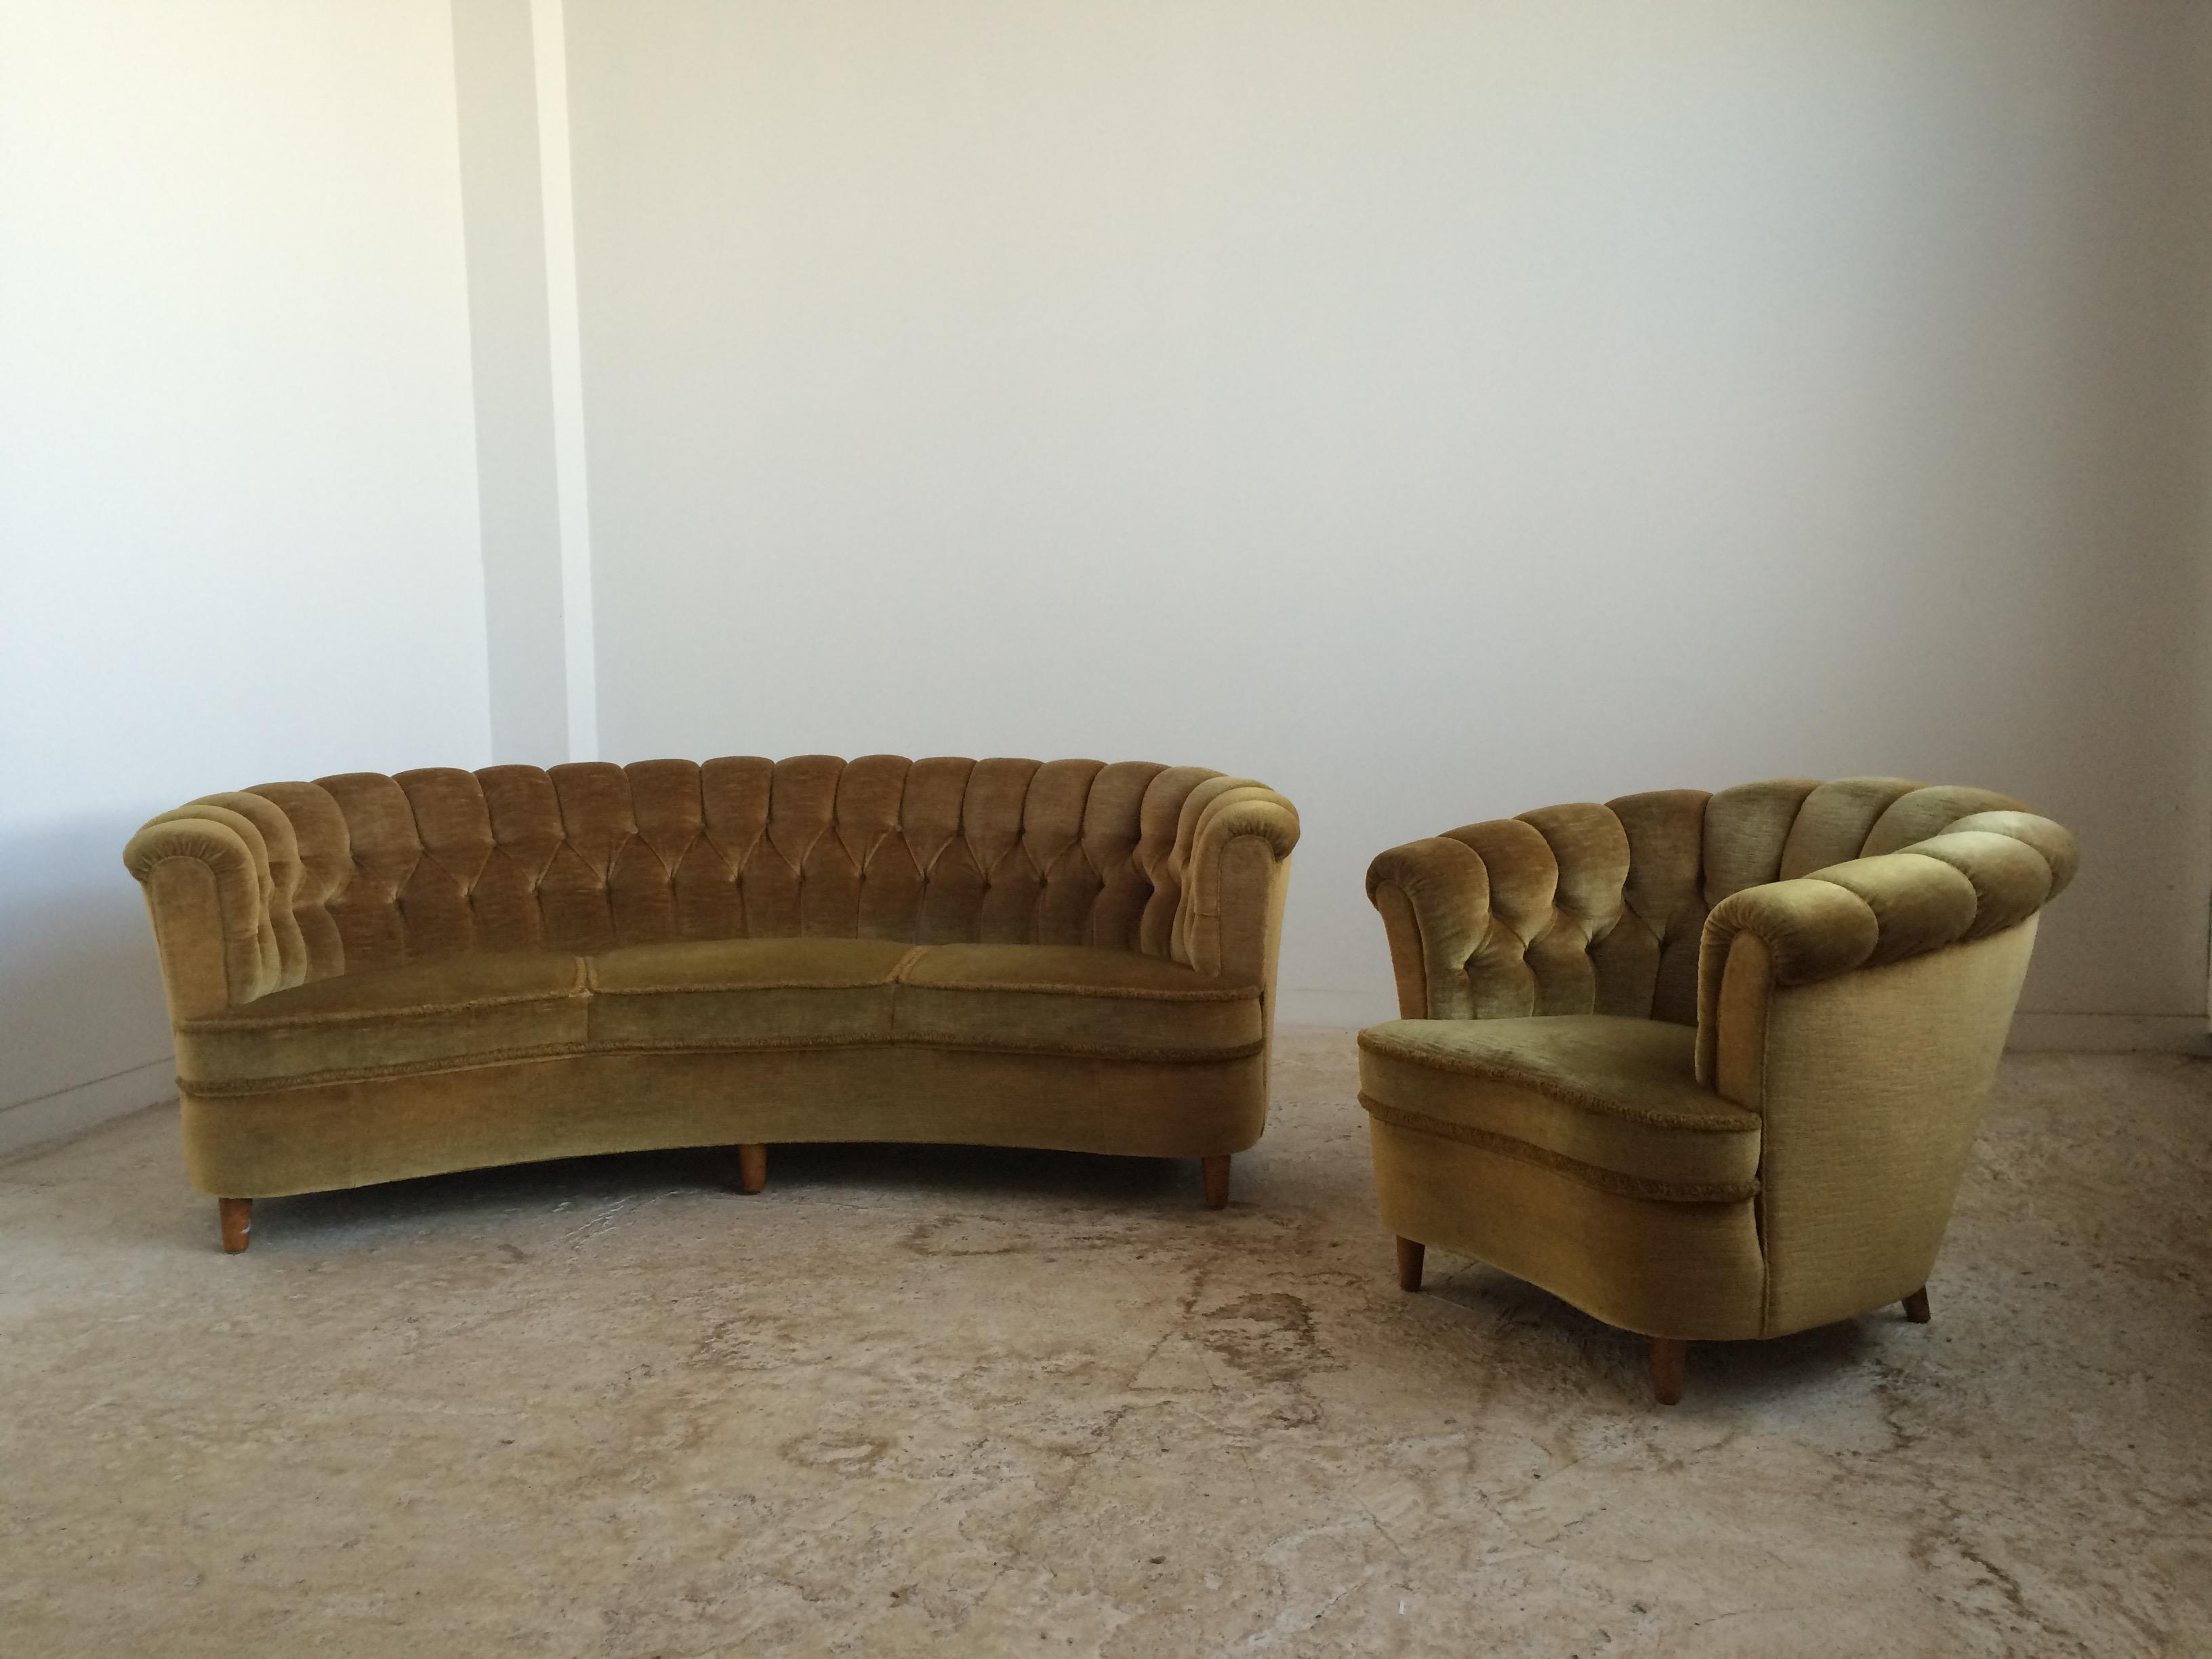 Tufted Curved Mohair Sofa And Lounge Chair In Deep Gold Mohair Upholstery.  Comfortable And Cozy